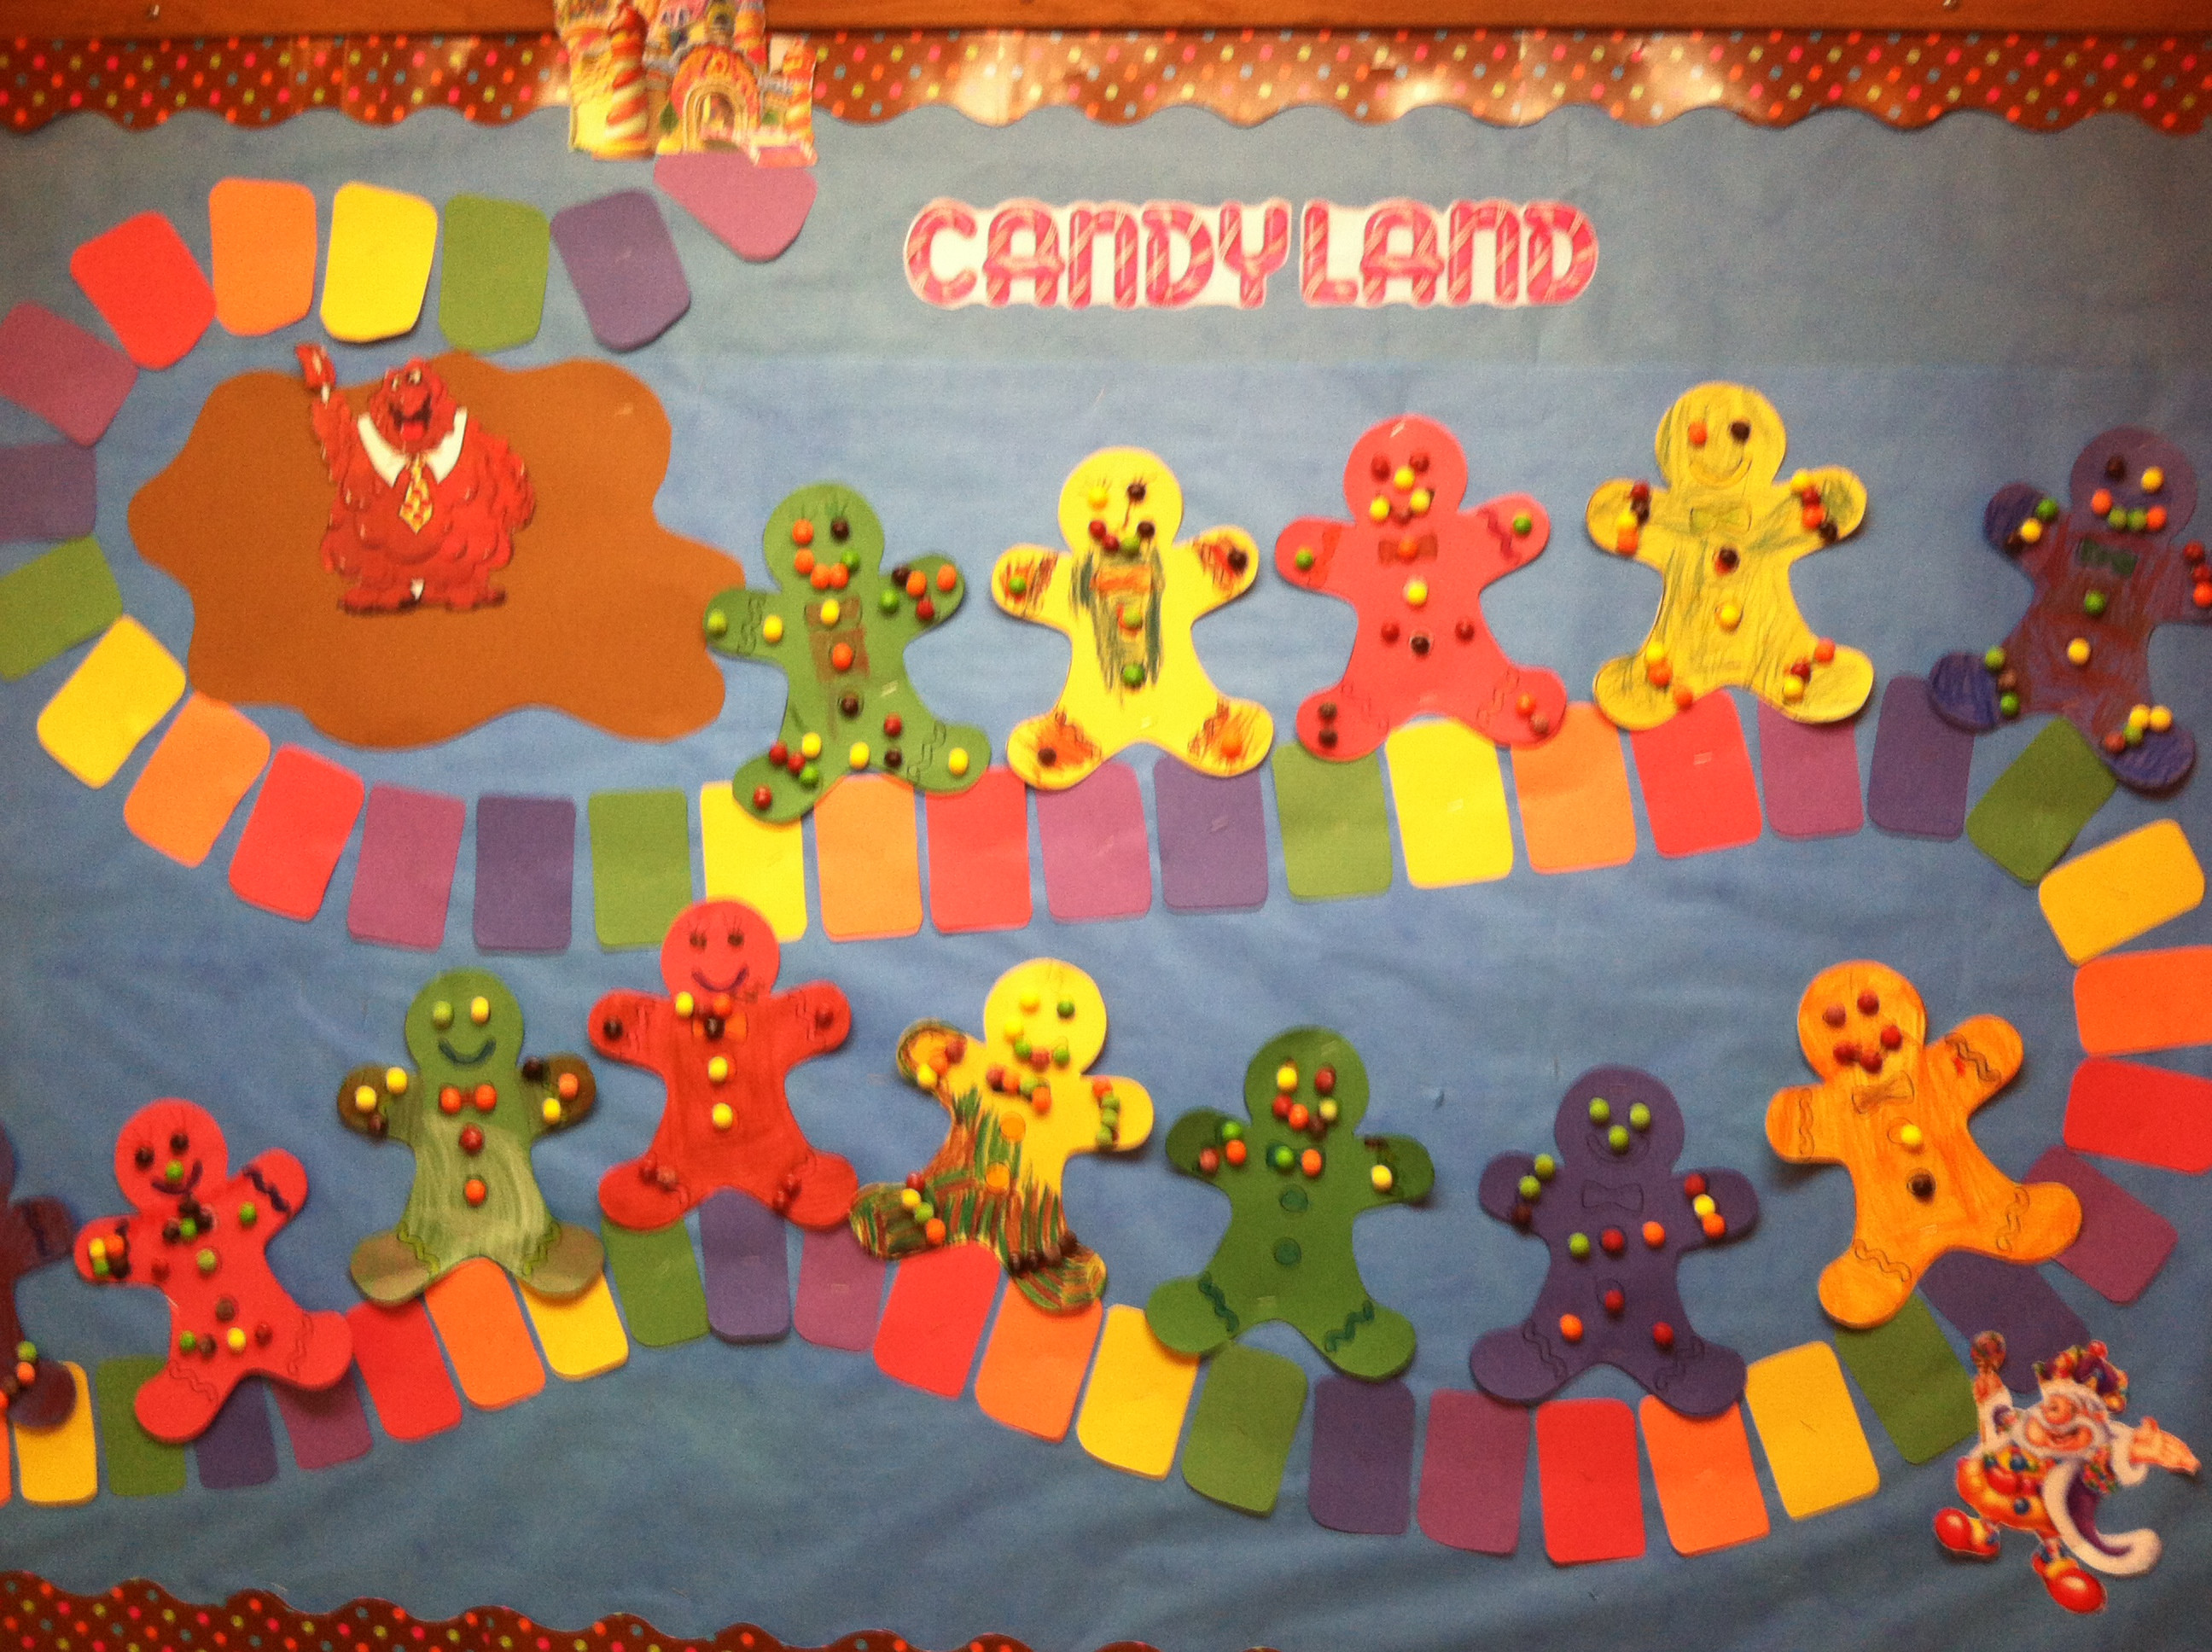 2592x1936 candy land bulletin board i did for my christmas theme - Candyland Christmas Theme